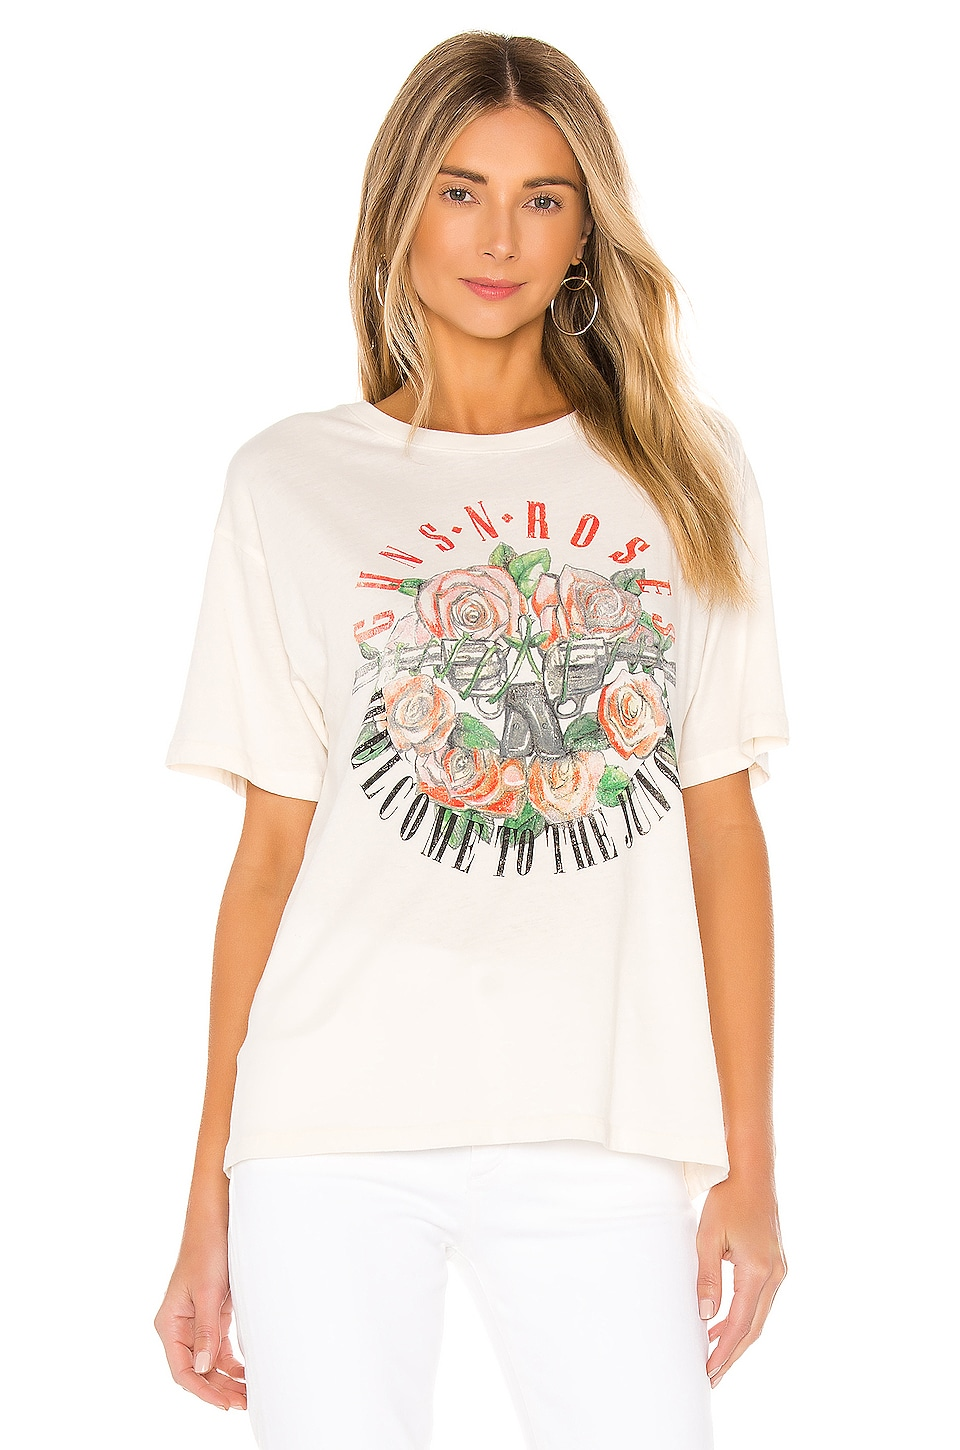 Guns N Roses Classic Boyfriend Tee, view 2, click to view large image.